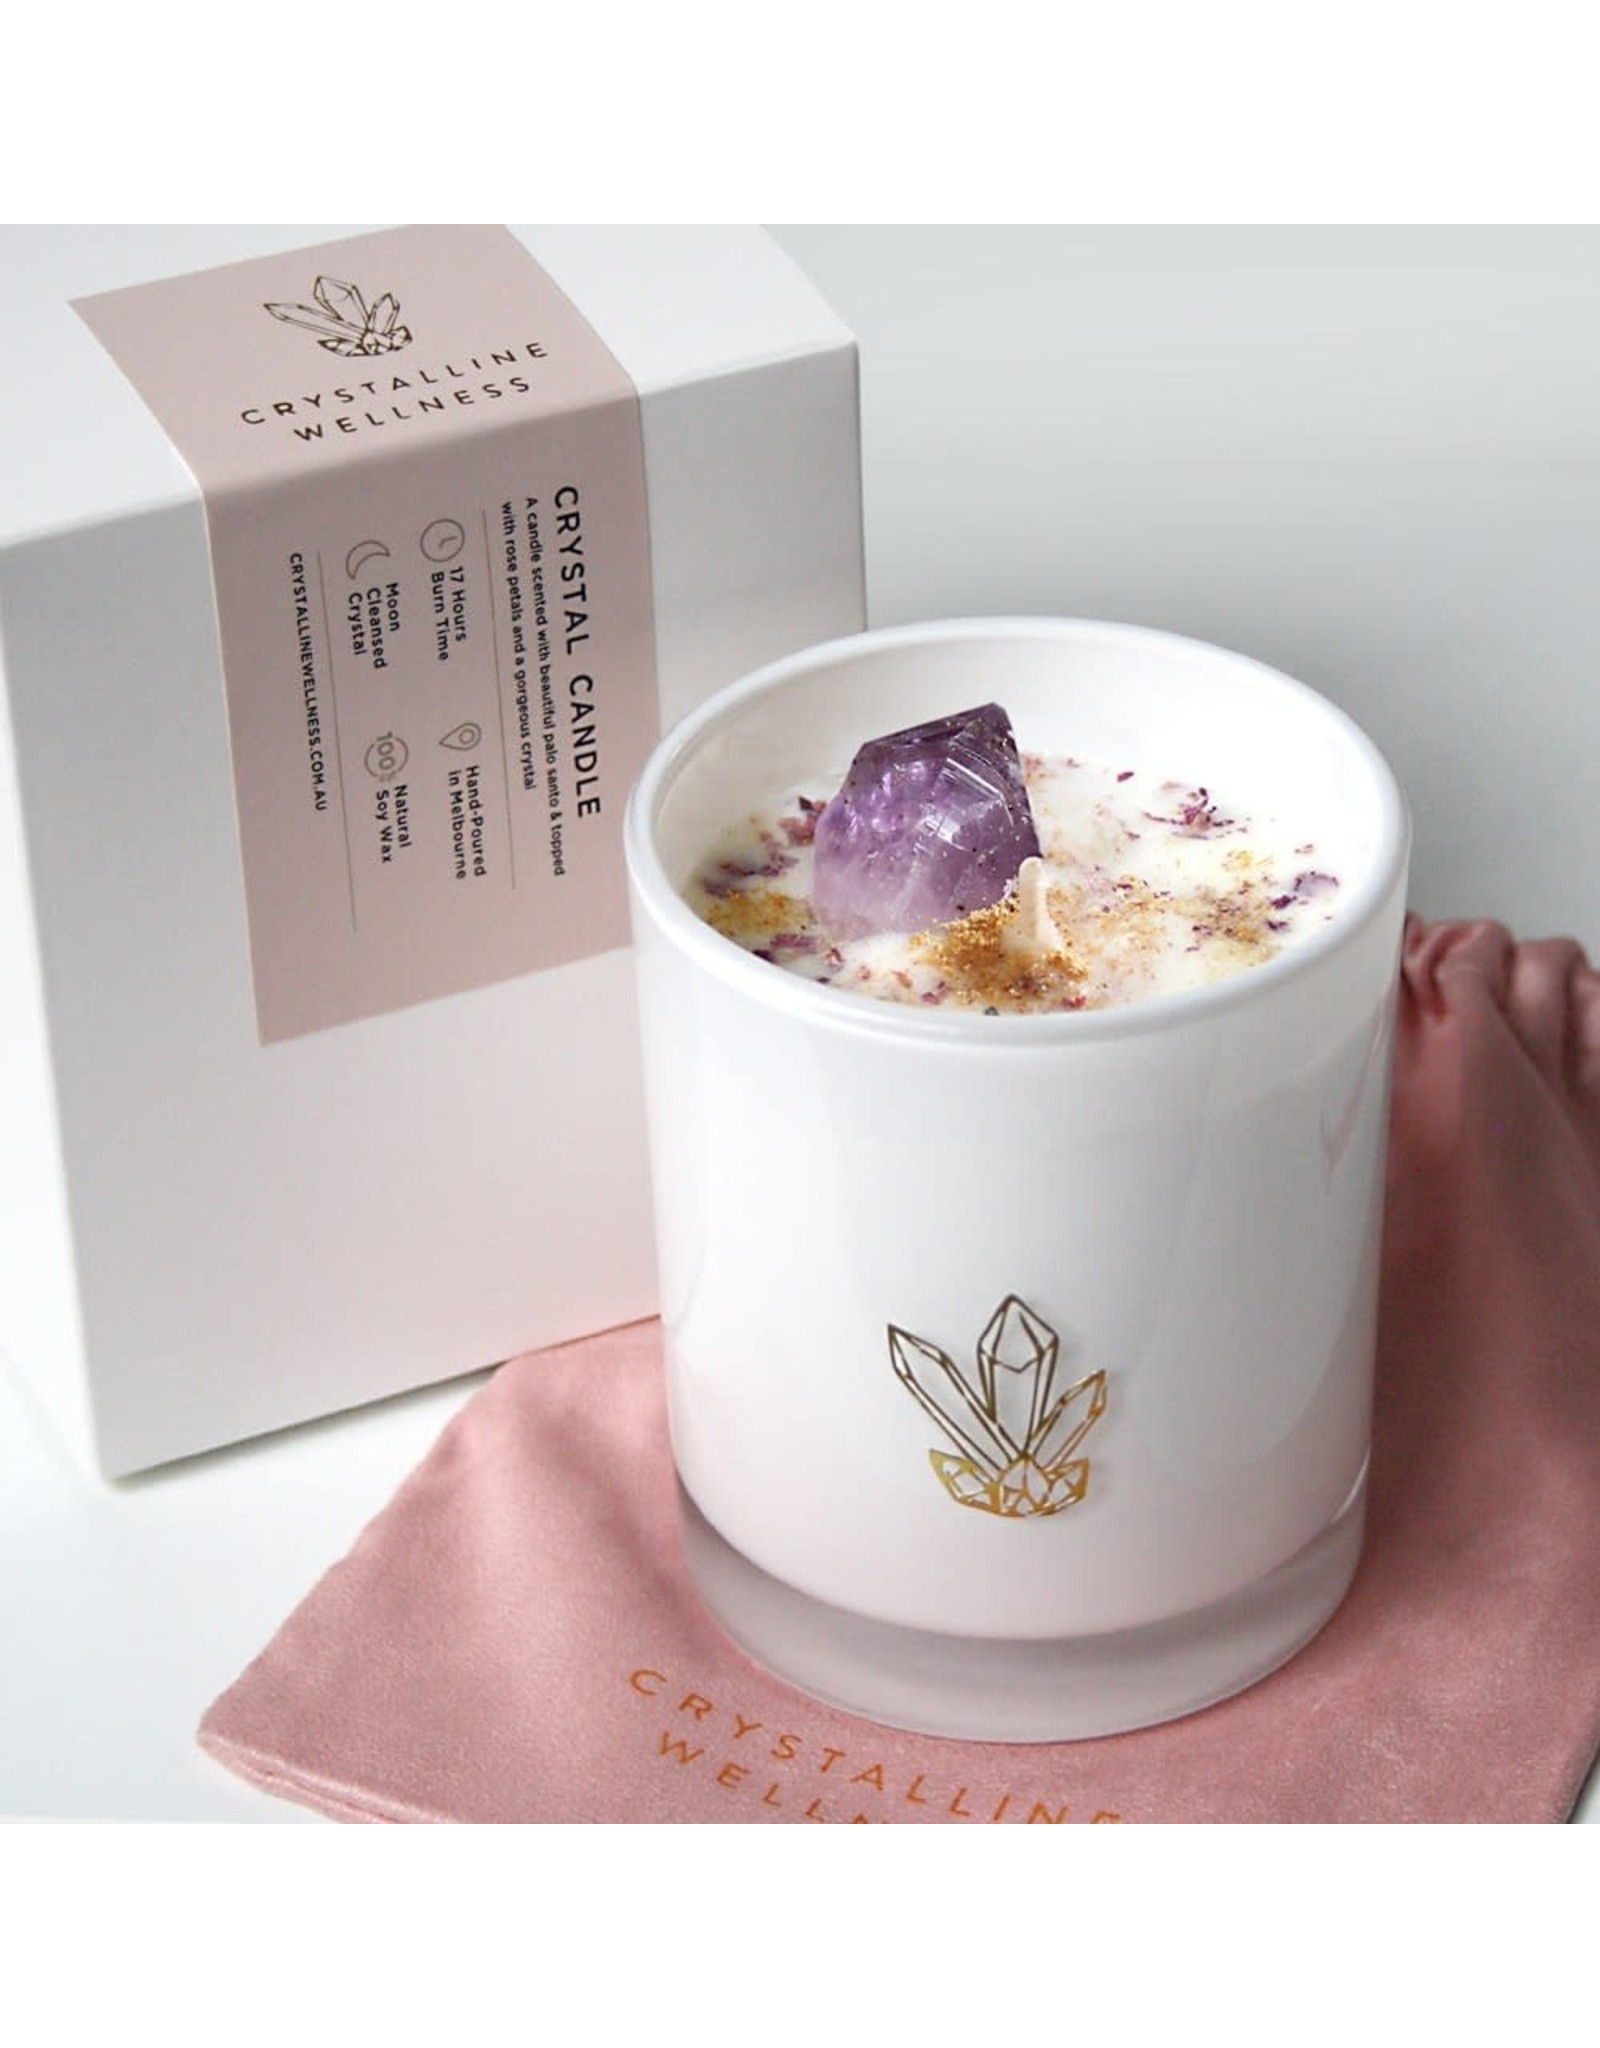 Crystalline Wellness Large Glass Soy Candle - Amethyst